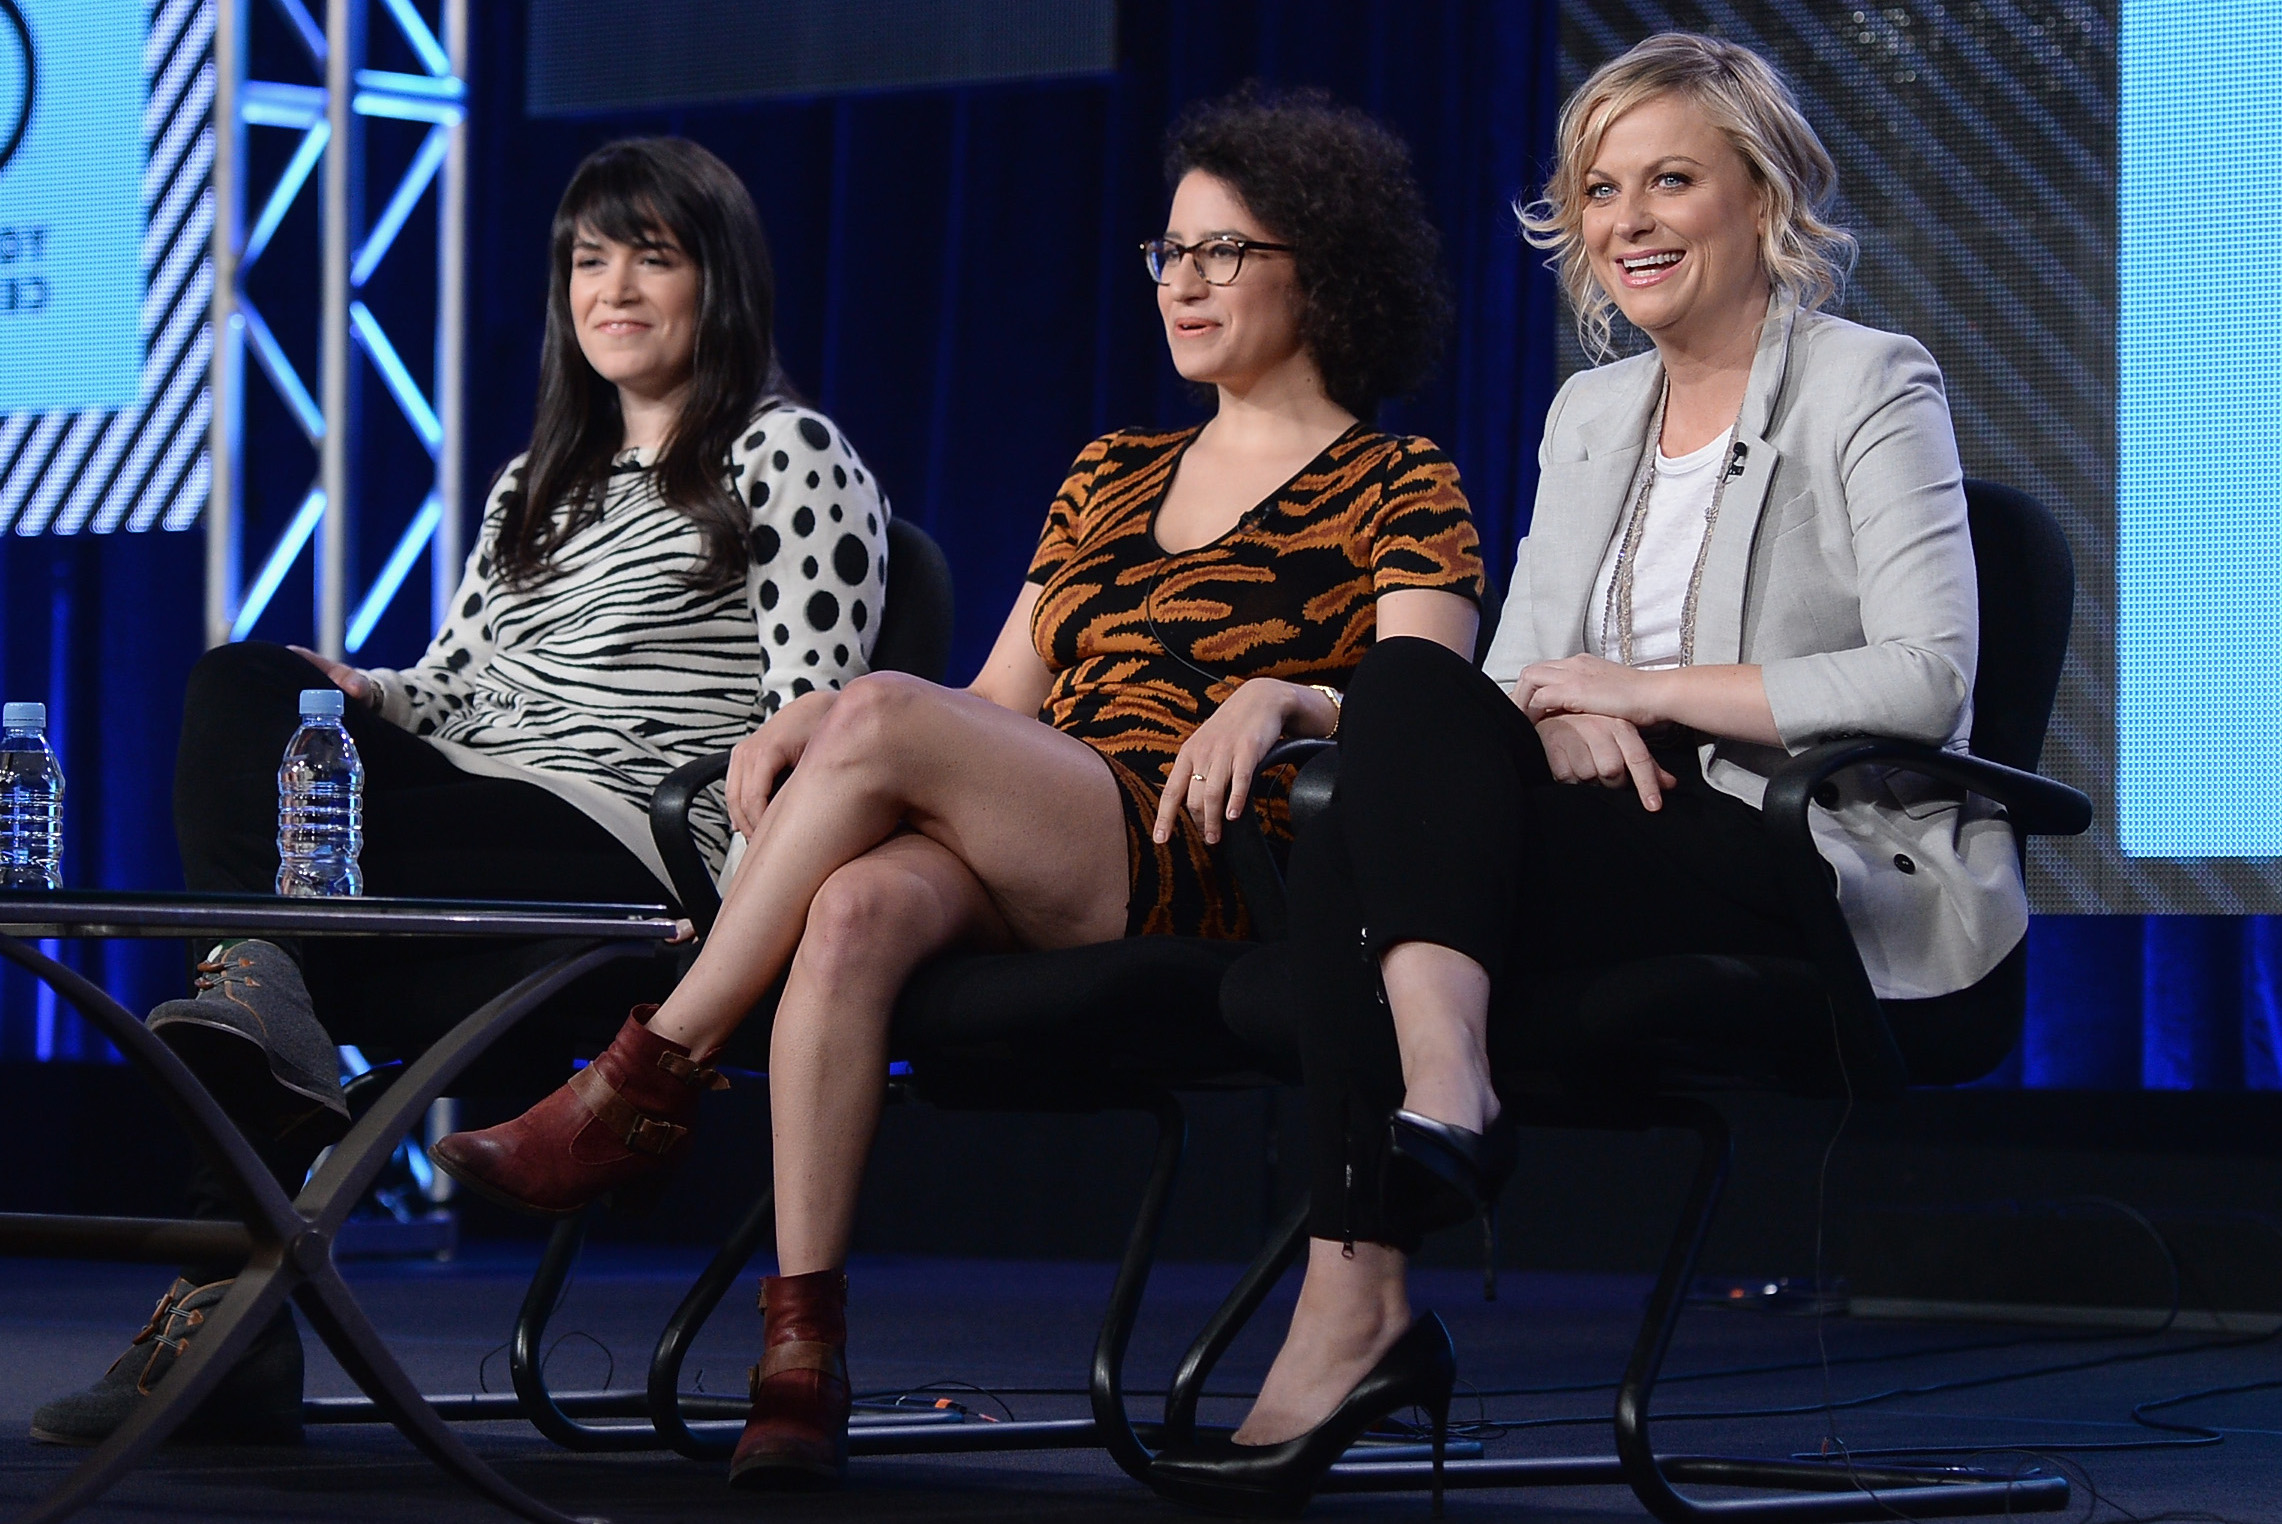 Who is abbi jacobson, abi jacobson, abby jacobson, carry this book by abbi jacobson, when is Broad City season four, Comedy Central, Late Show Stephen Colbert